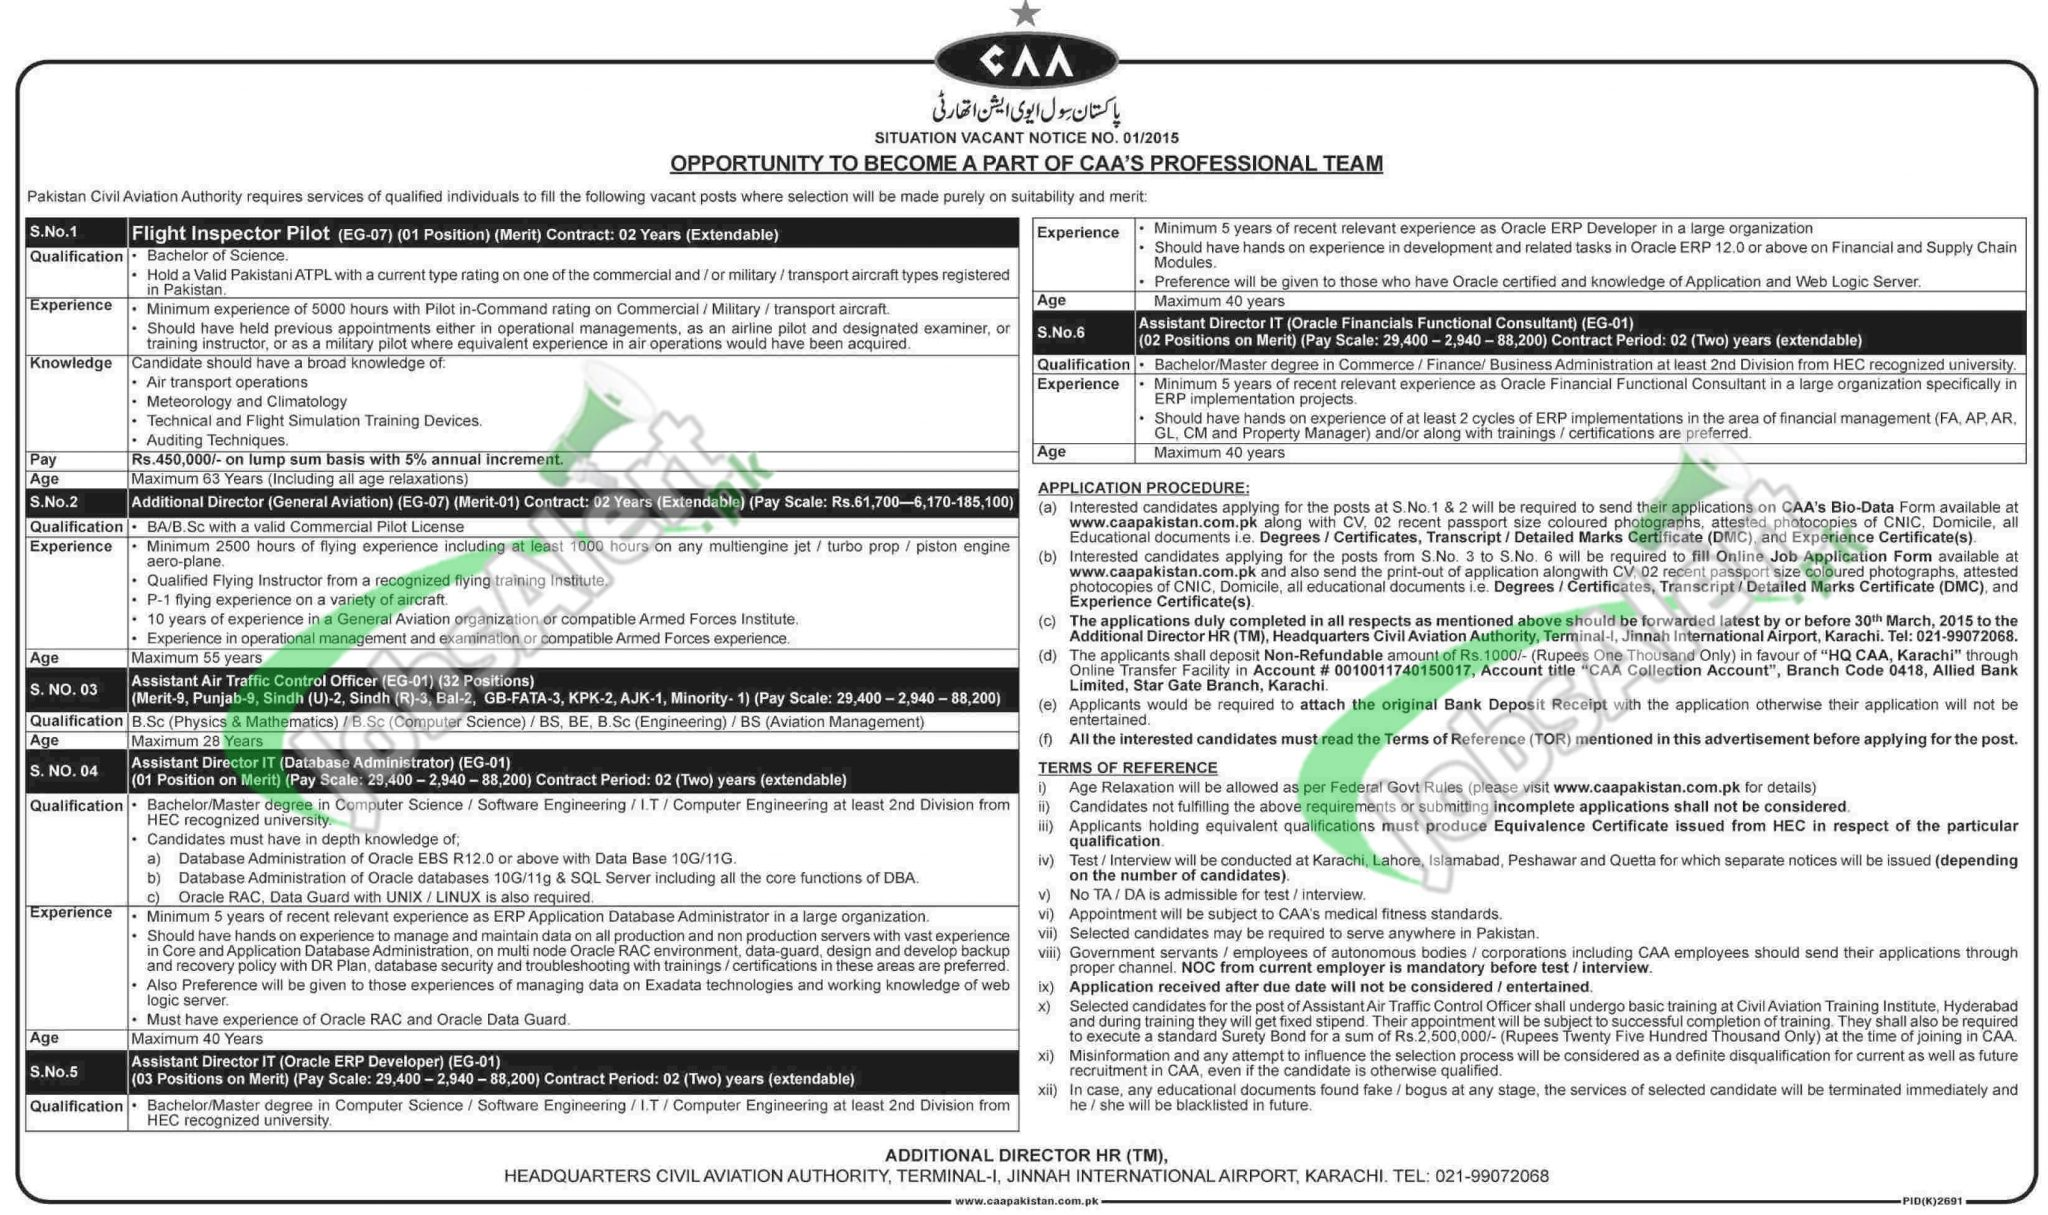 Pakistan Civil Aviation Authority Jobs 2015